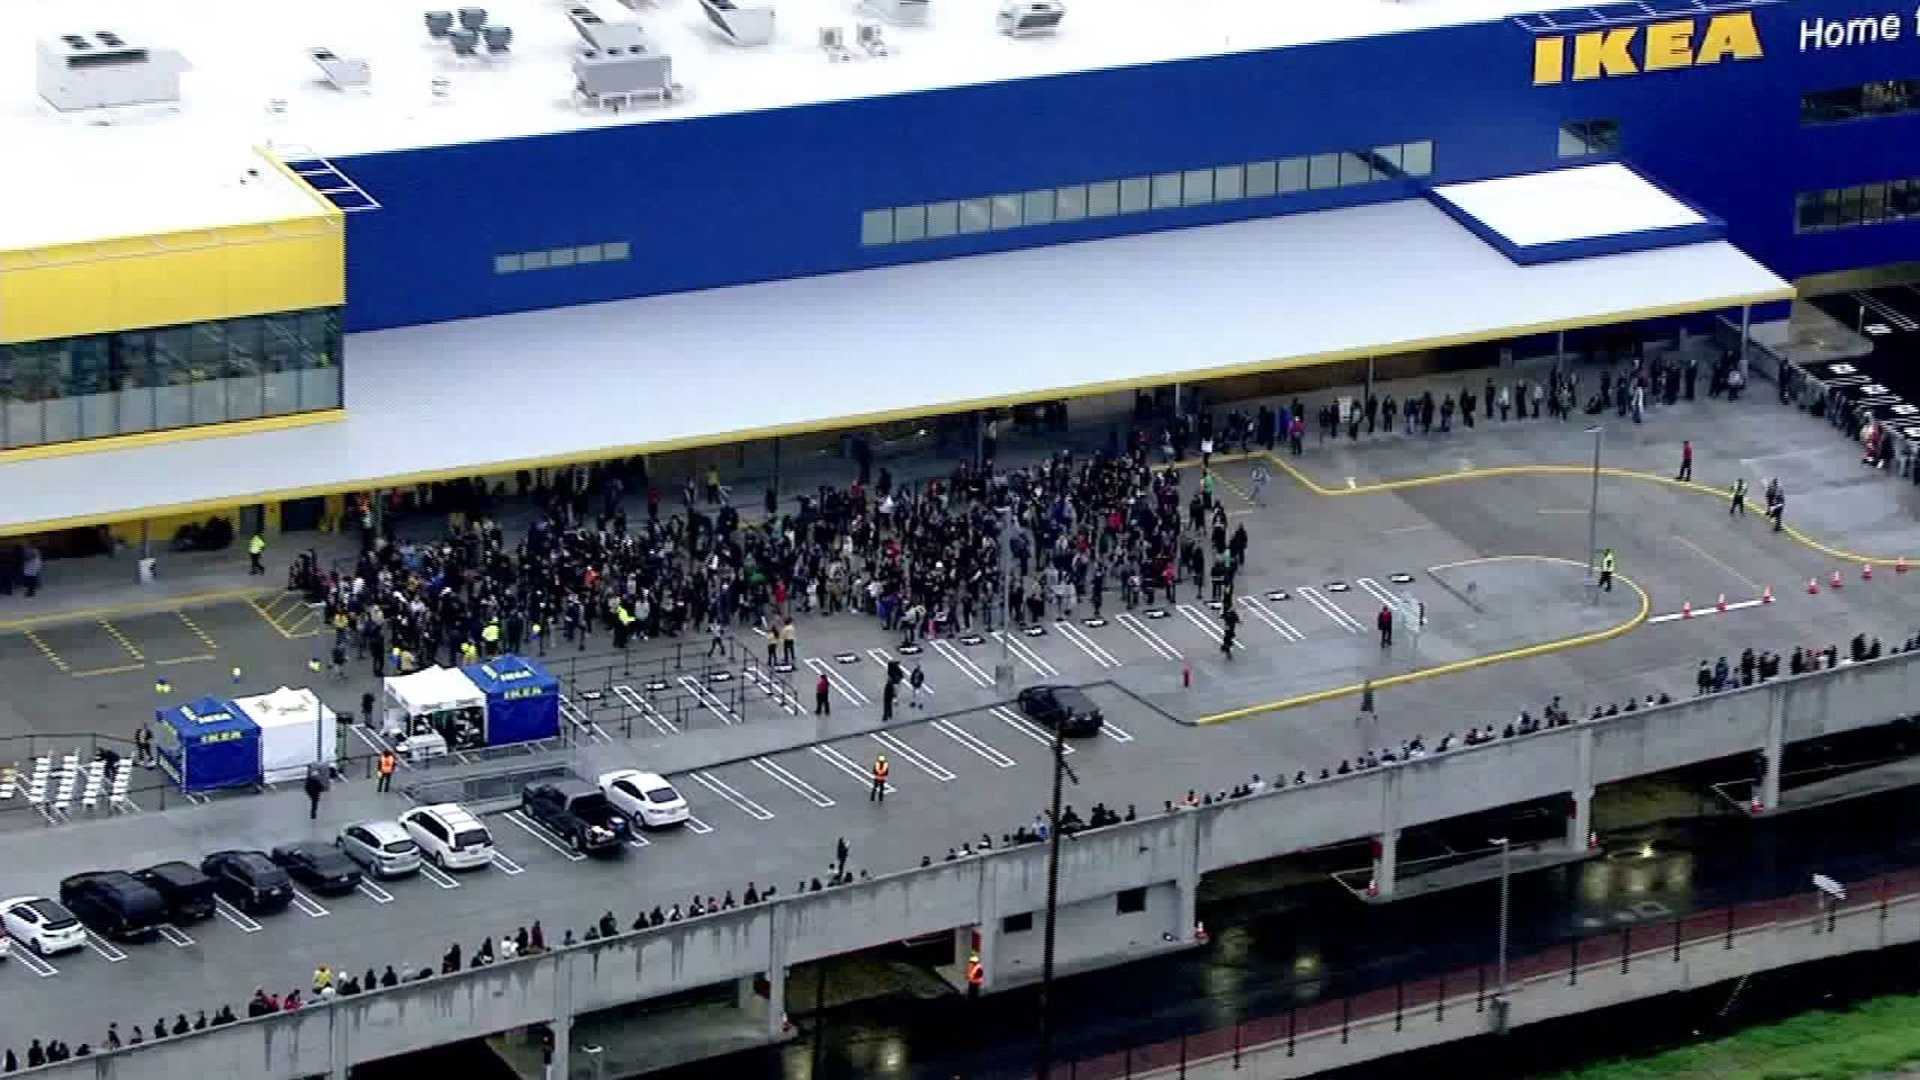 Crowds Gather For The Grand Opening Of New Ikea In Burbank Calif